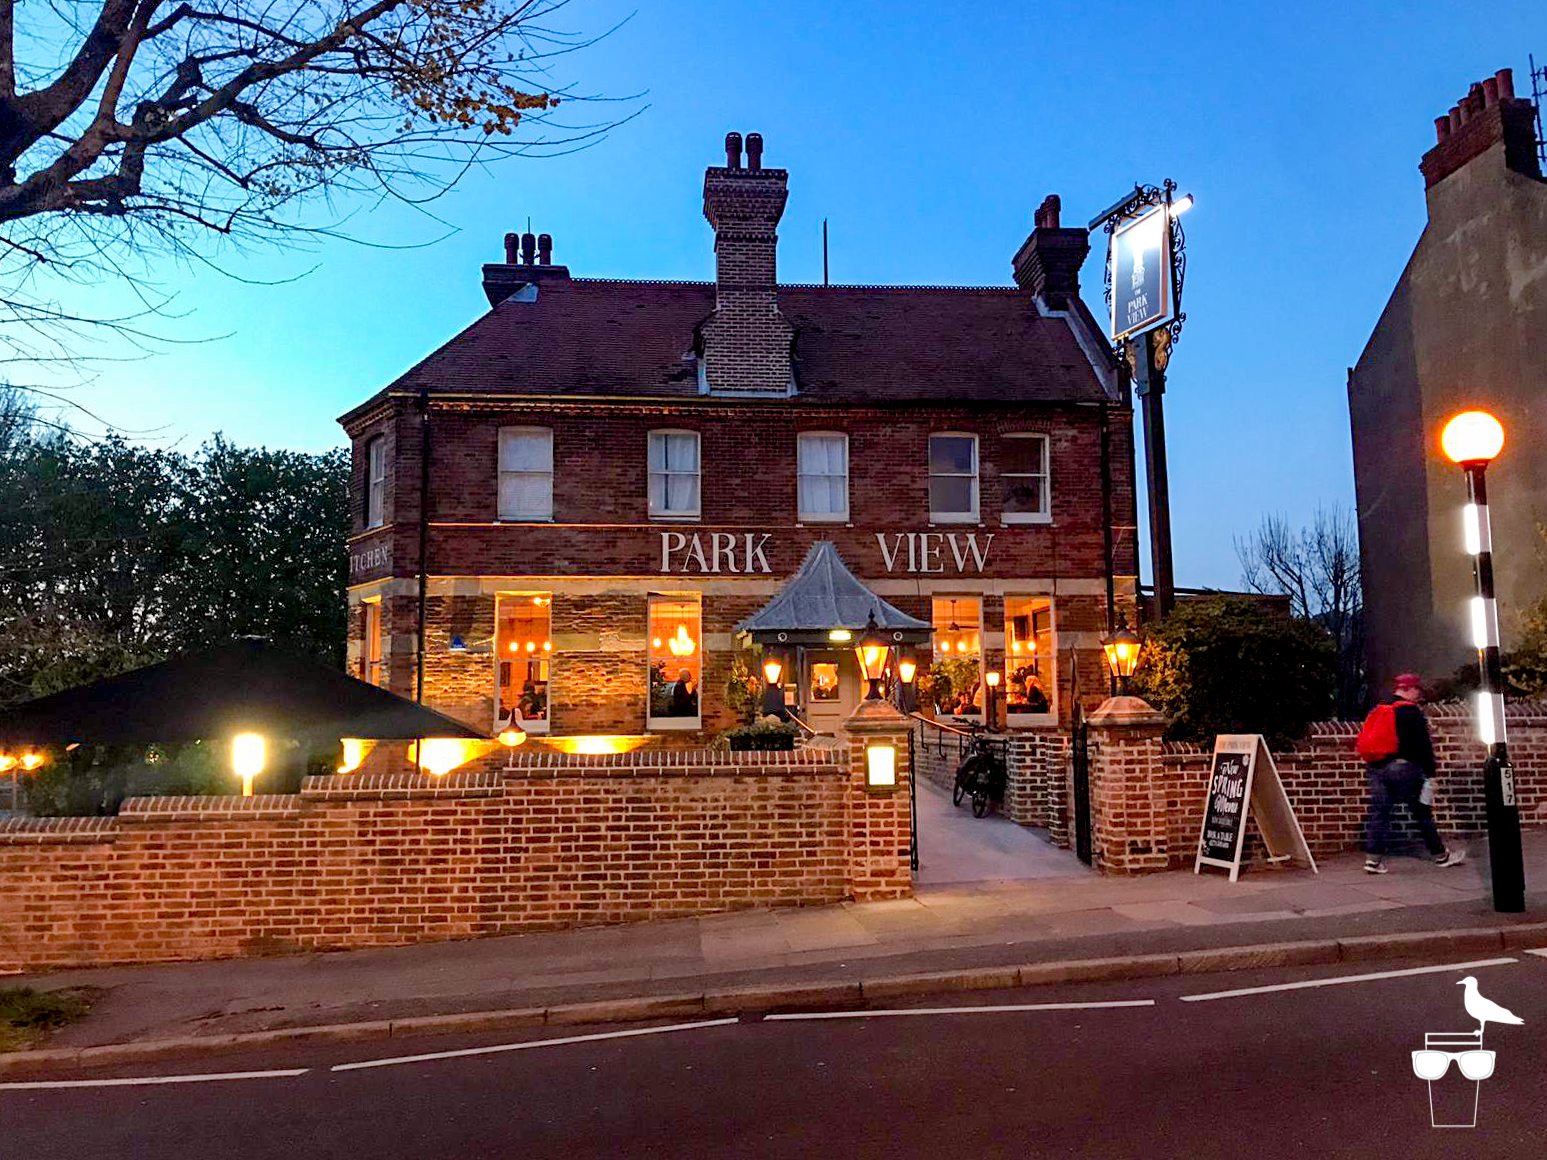 the park view pub preston park brighton outside front elevation dusk